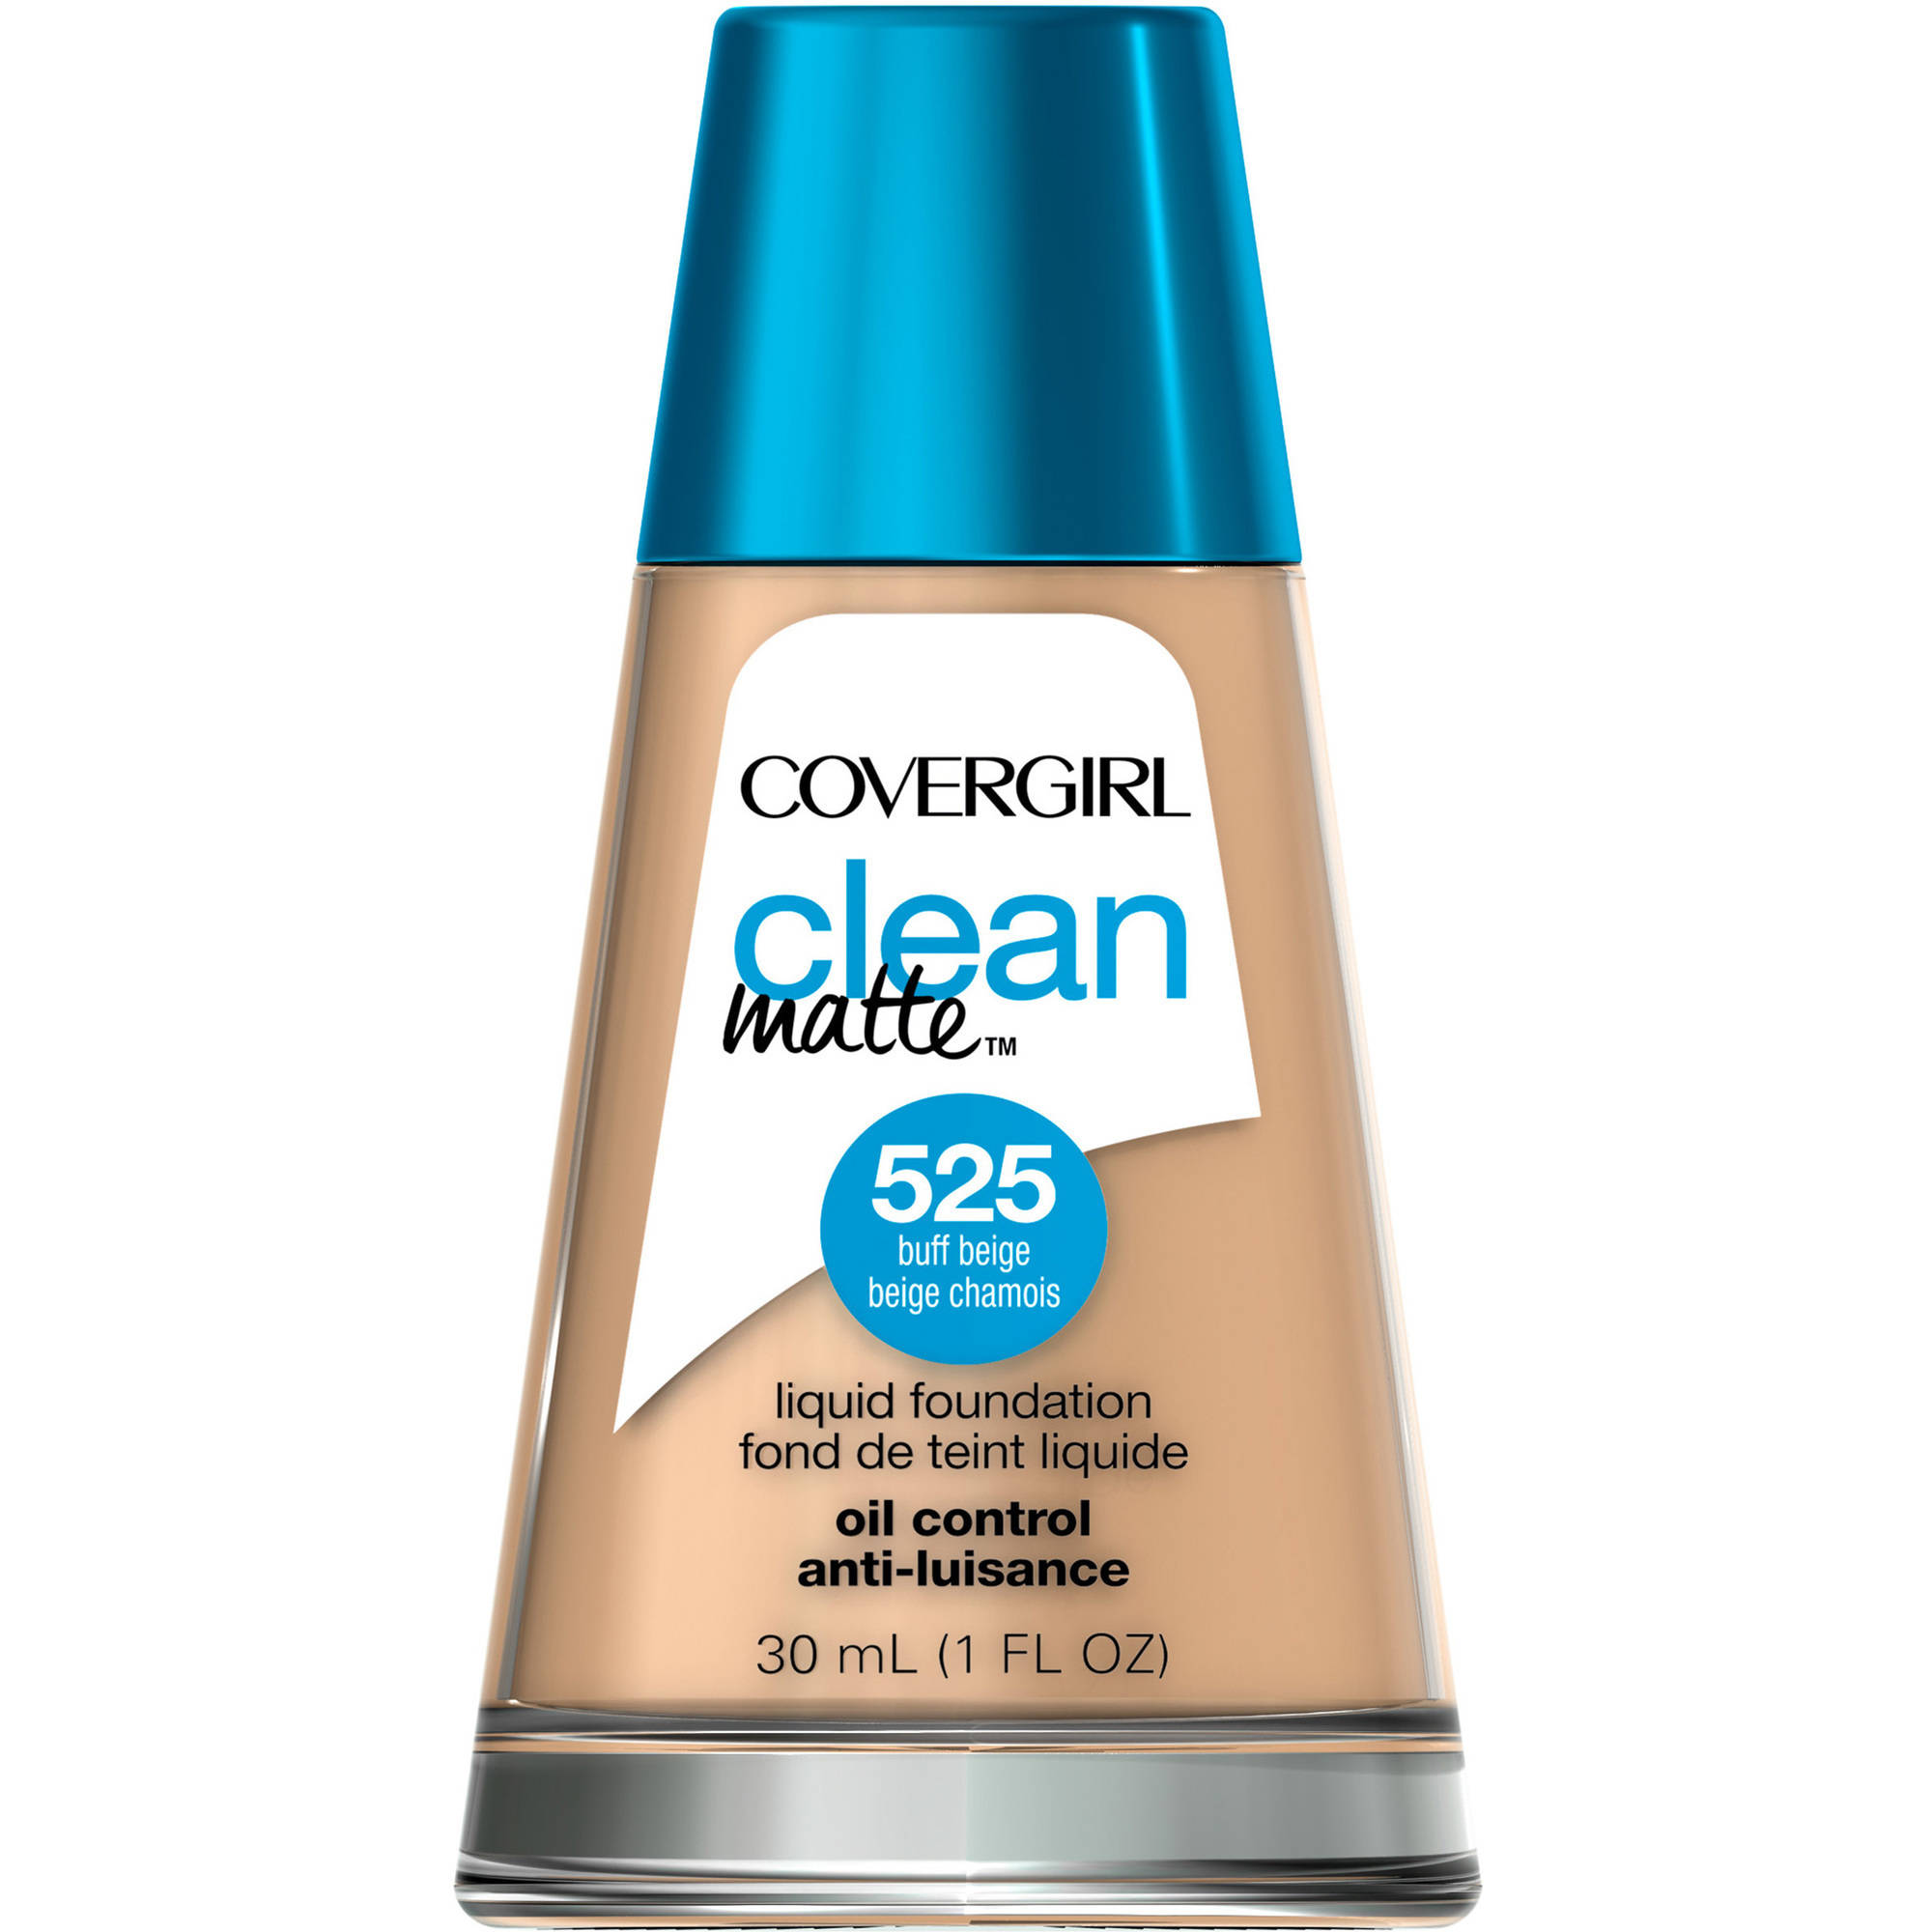 COVERGIRL Clean Matte Liquid Foundation, 525 Buff Beige, 1 ...